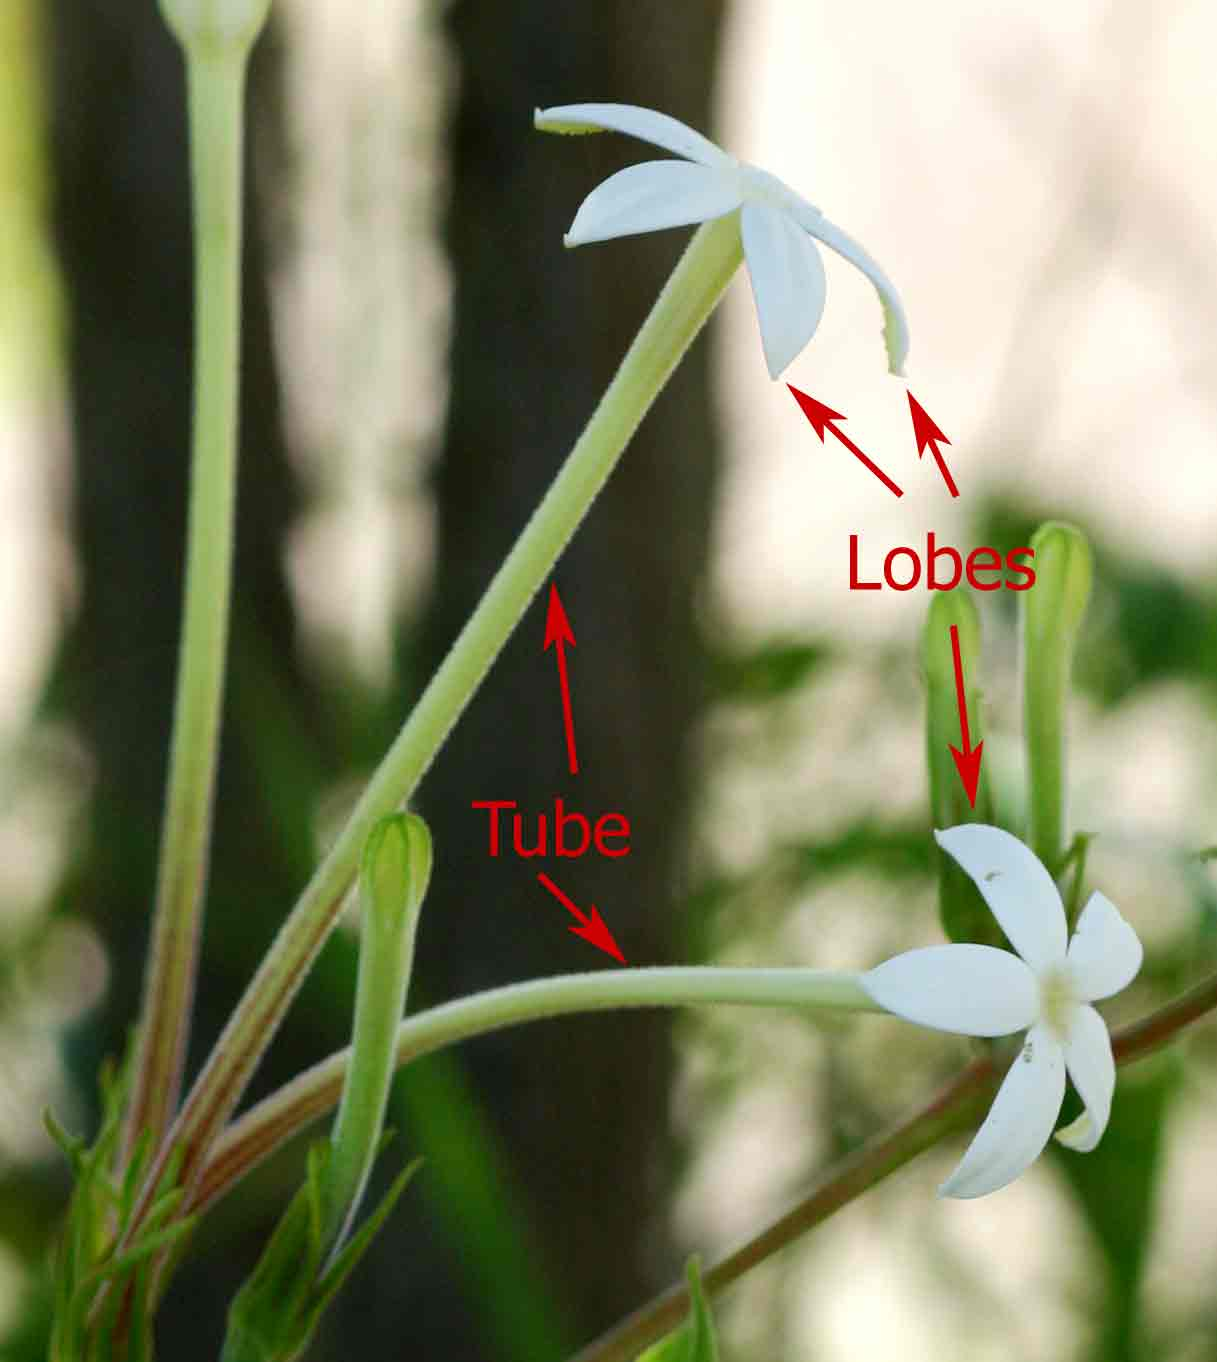 Image showing corolla tube and lobes